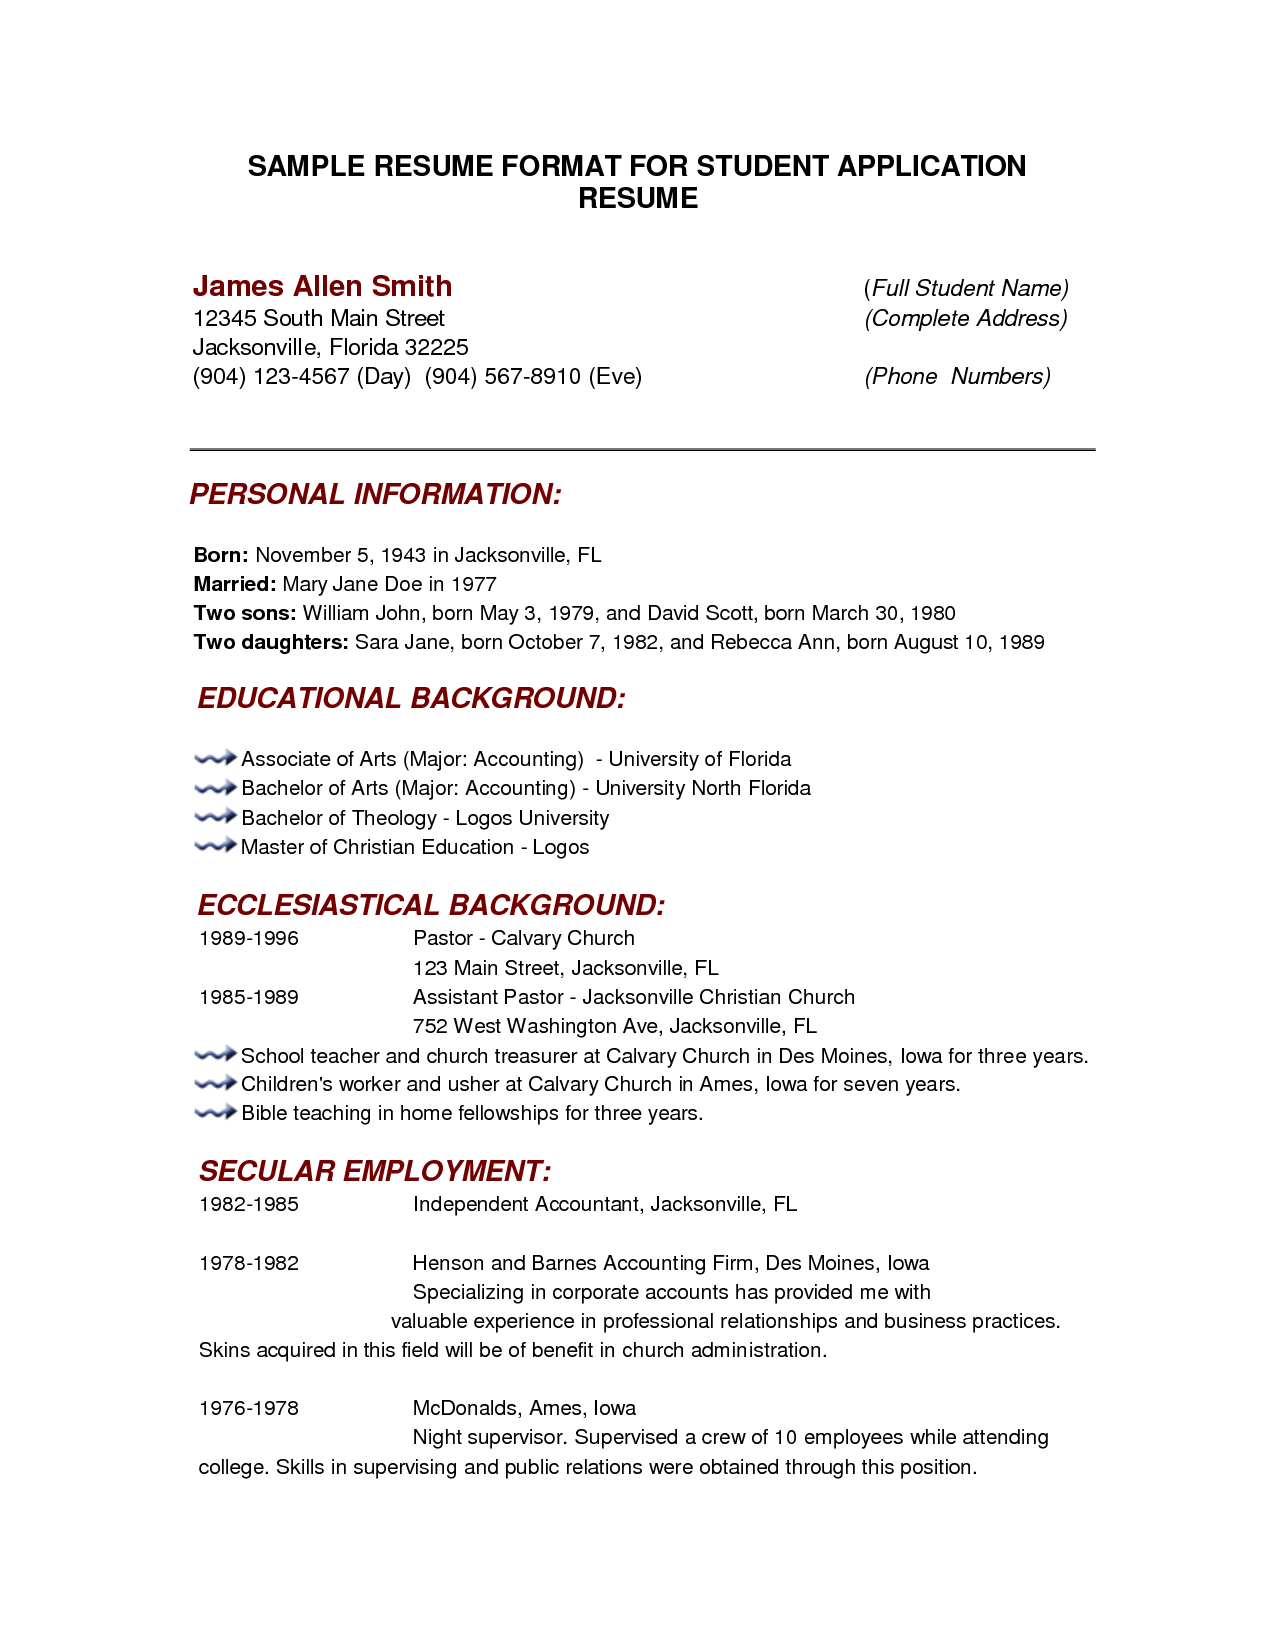 Full Block Resume Format Style For Business Letter Examples Basic Template  Free Samples  Academic Resume Format